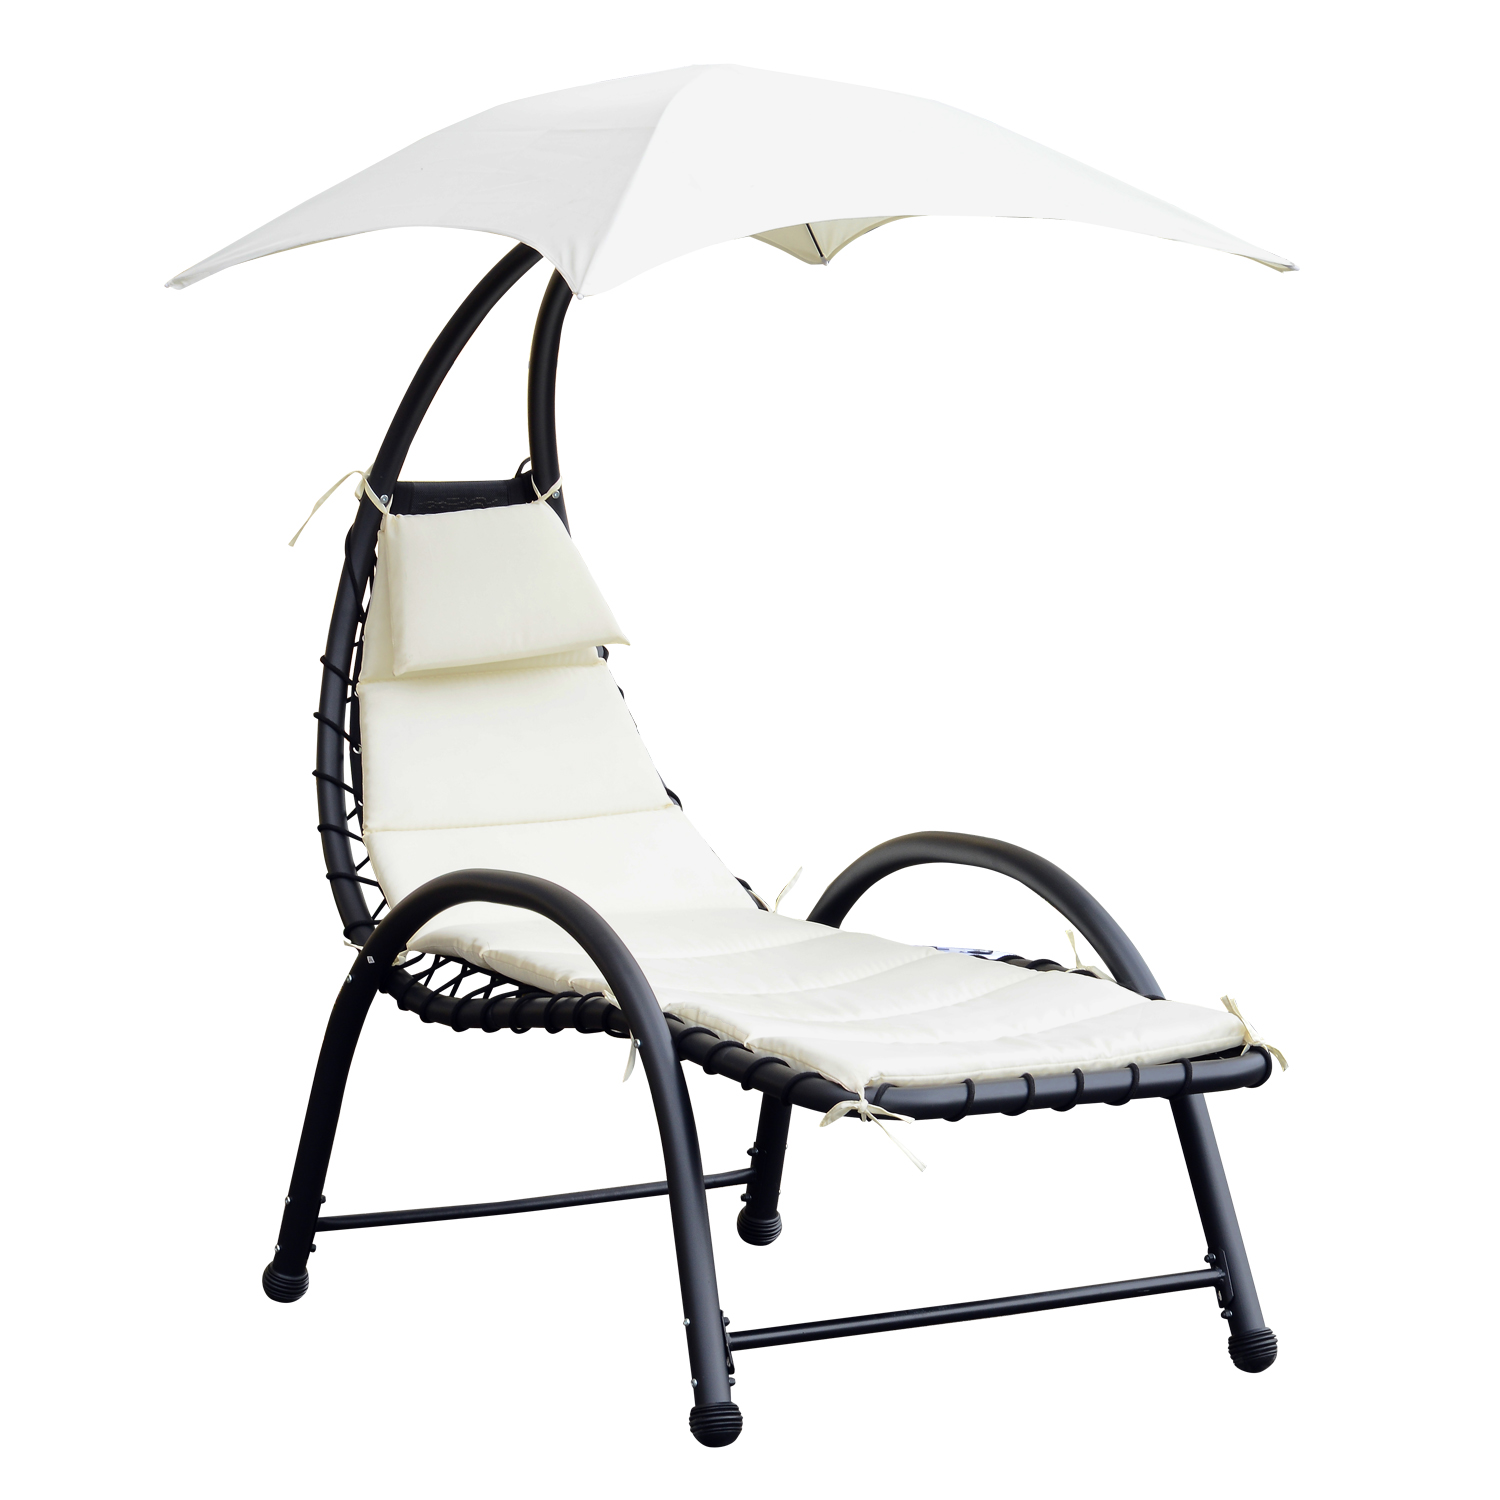 Outsunny Lounger Chair Upholstered Chaise Longue Luxury Baby Sundress 195 × 100 × 202 Cm Cream